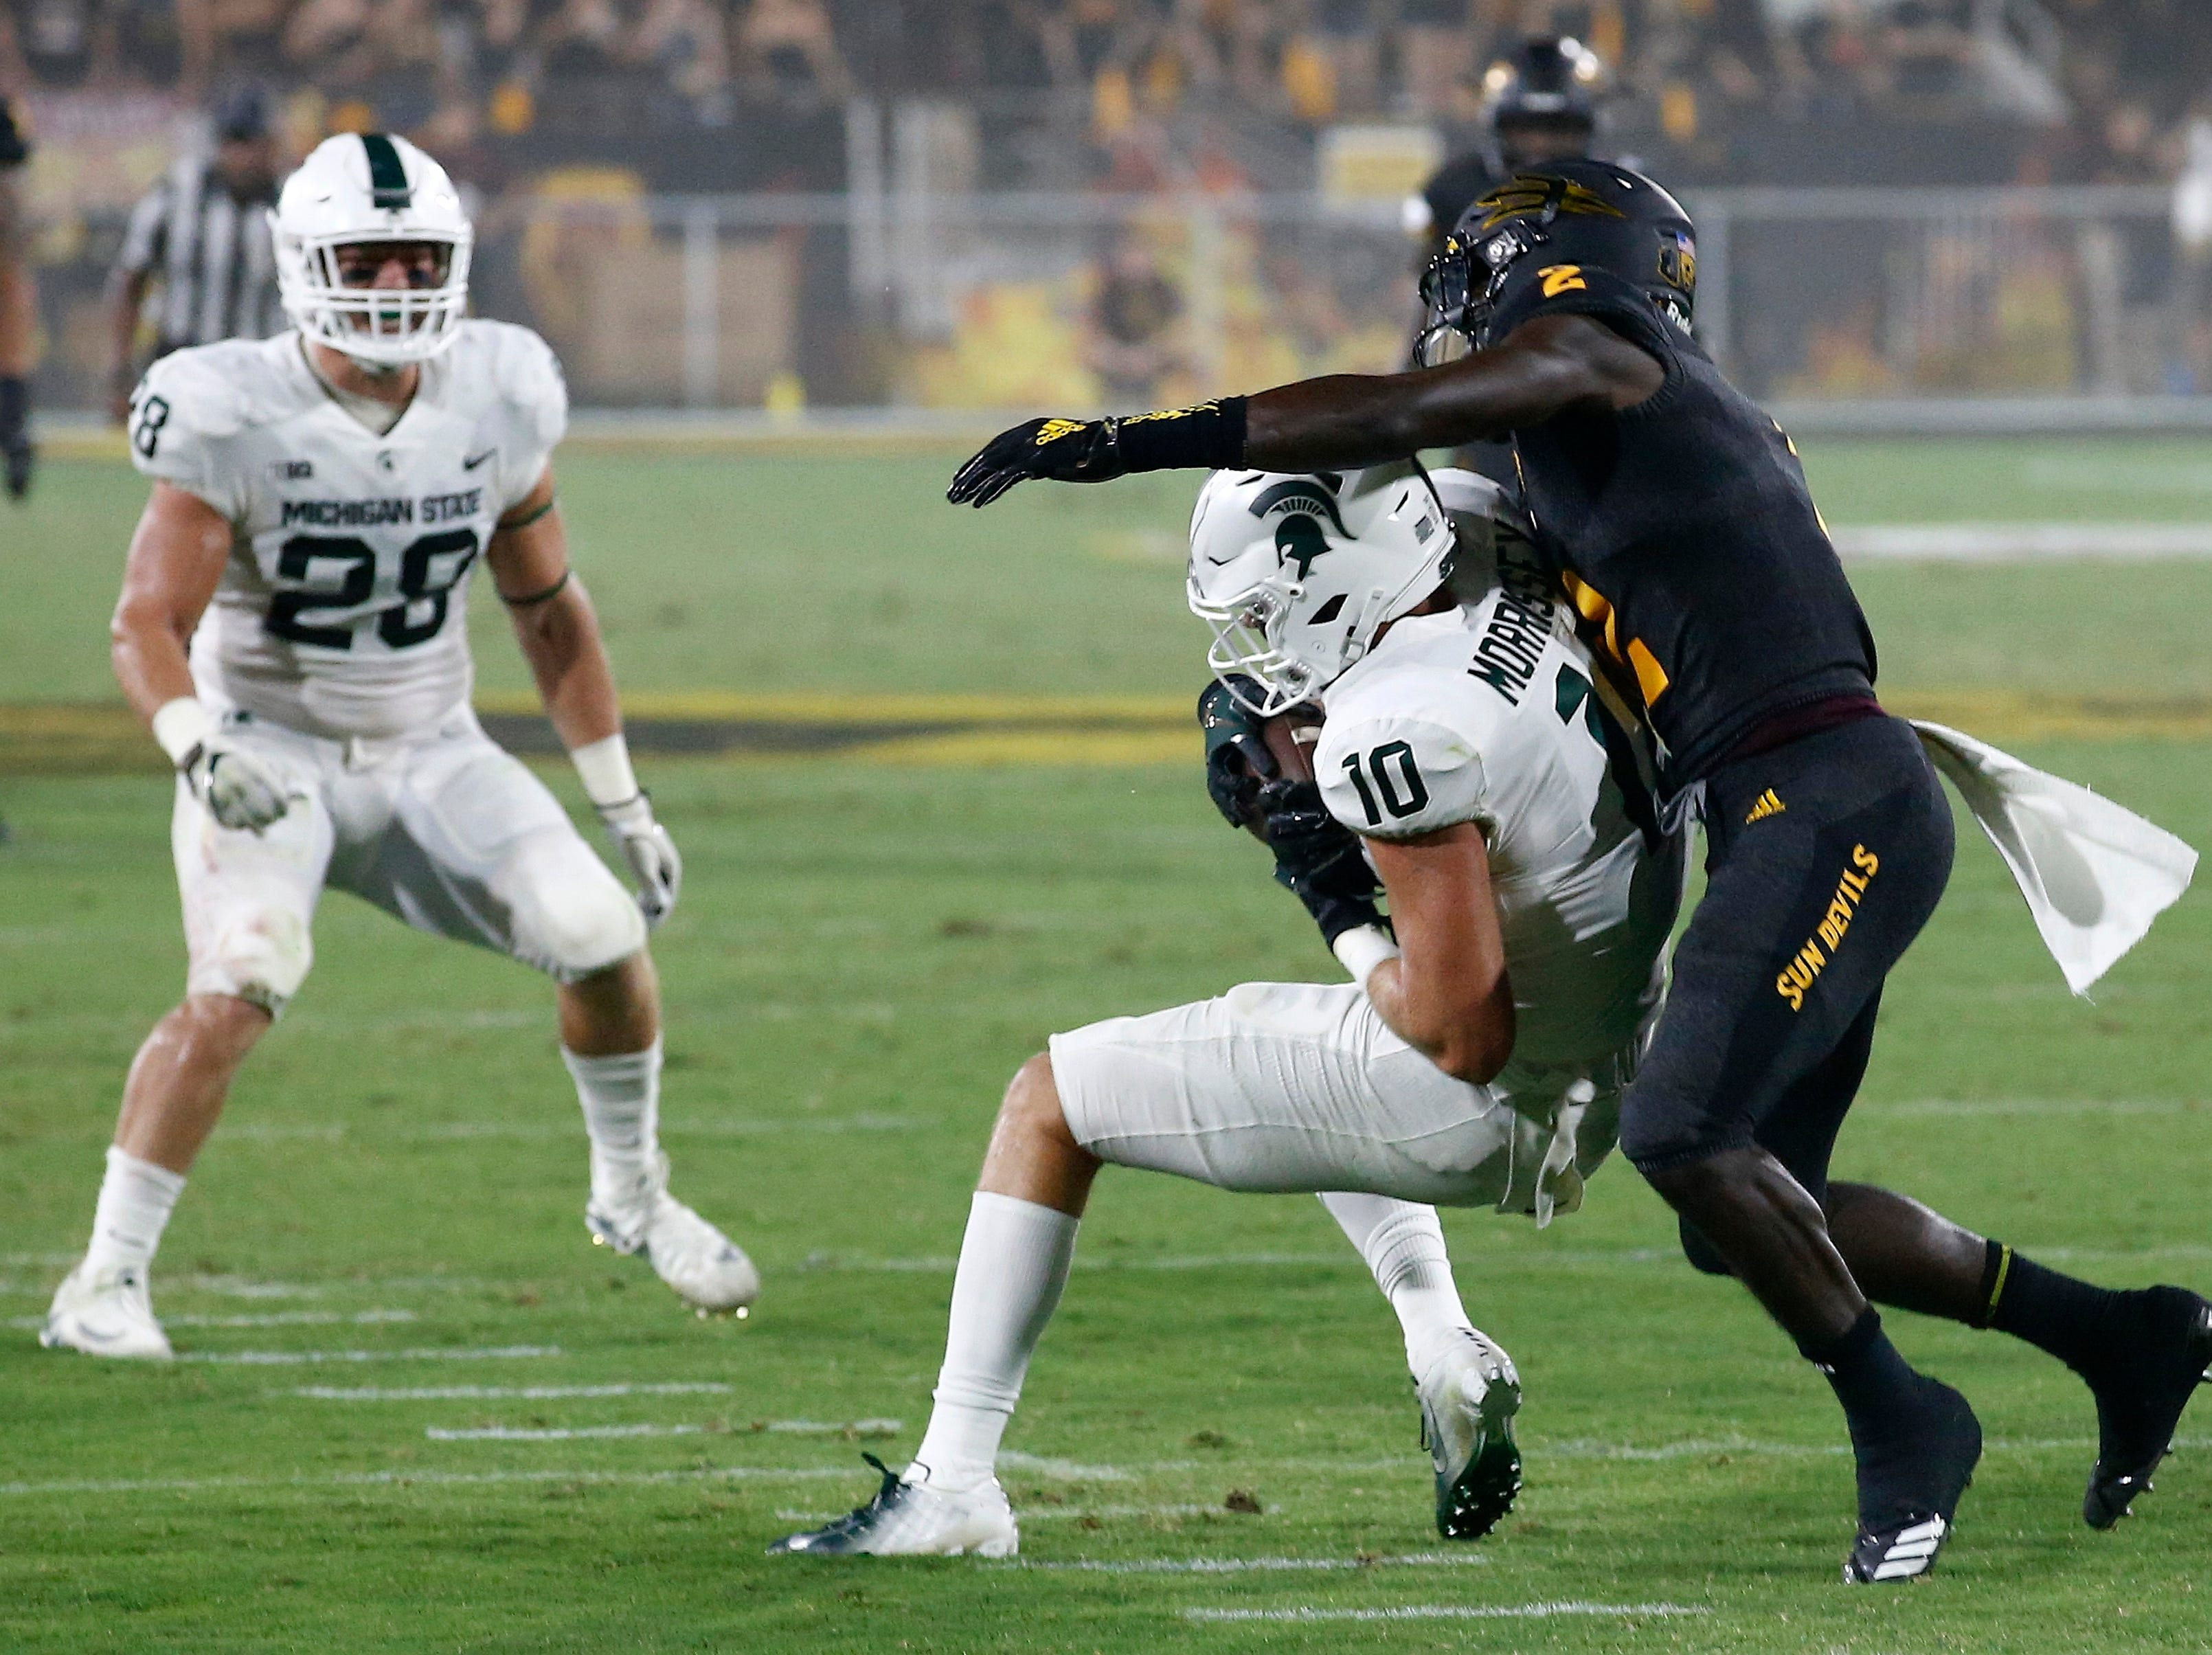 Michigan State safety Matt Morrissey (10) intercepts a pass intended for Arizona State wide receiver Brandon Aiyuk (2) as Michigan State linebacker Jon Reschke (28) watches during the first half of an NCAA college football game Saturday, Sept. 8, 2018, in Tempe, Ariz. (AP Photo/Ross D. Franklin)